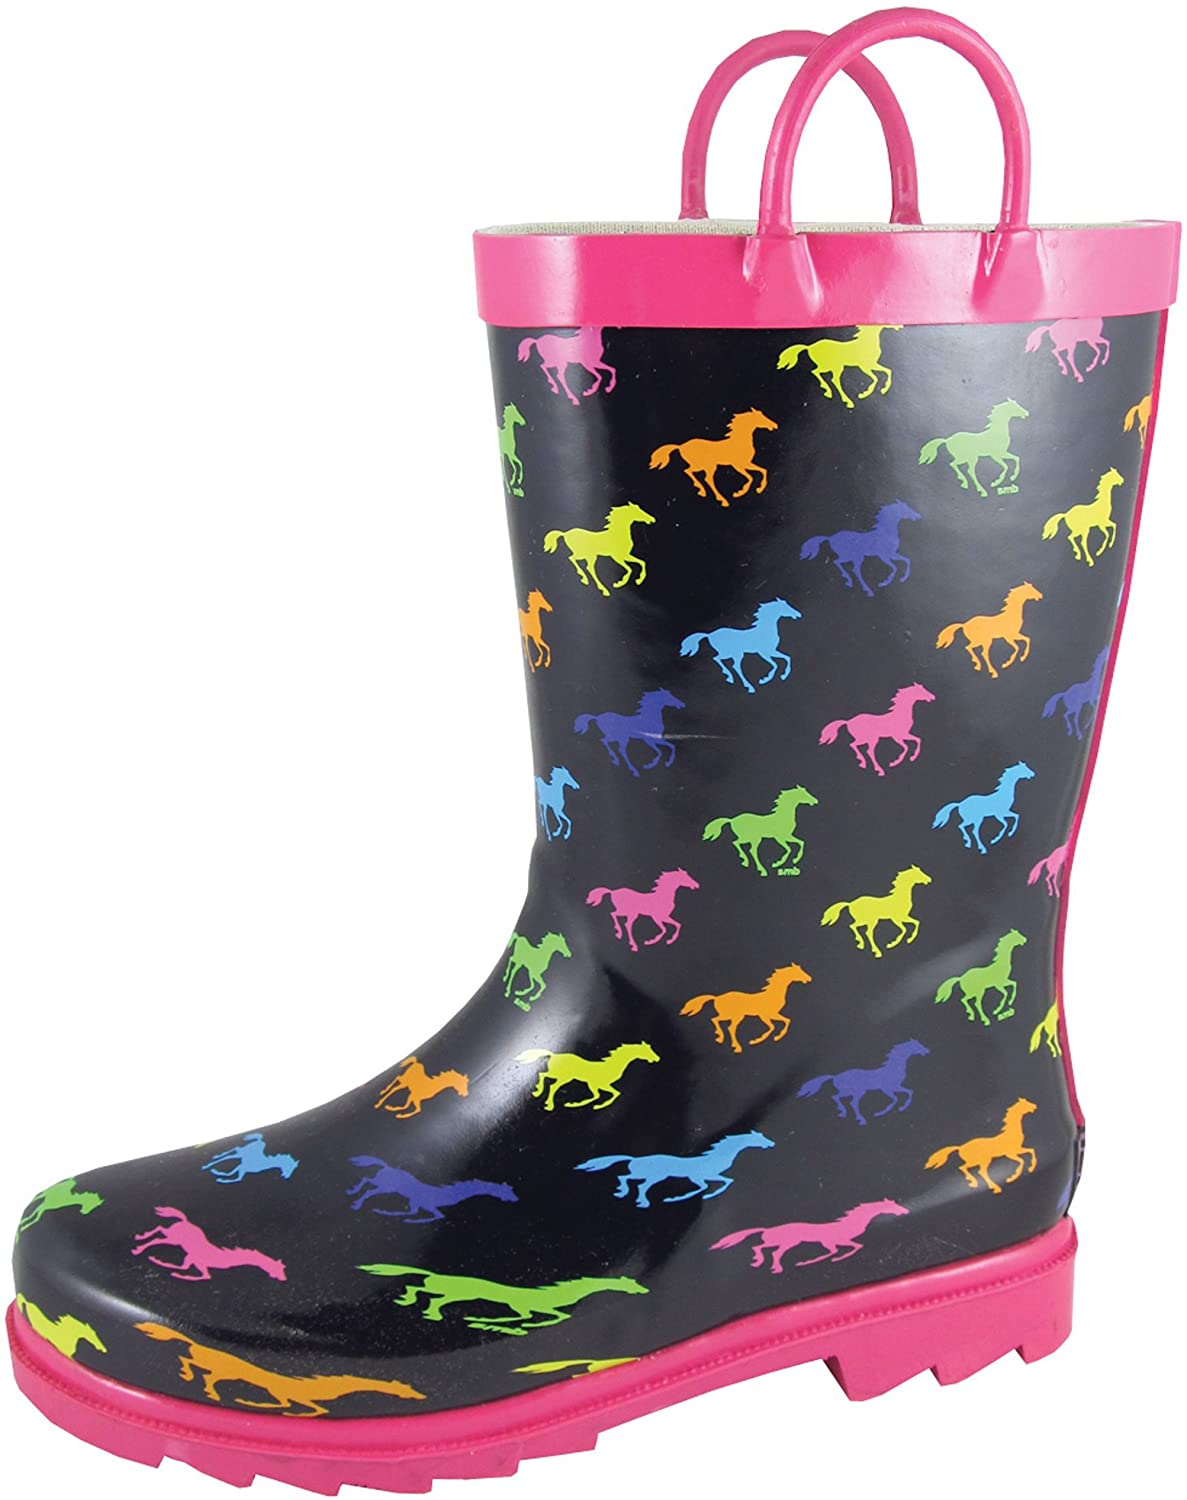 Smoky Childrens Kids Black Rubber Boot with Multi Color Ponies